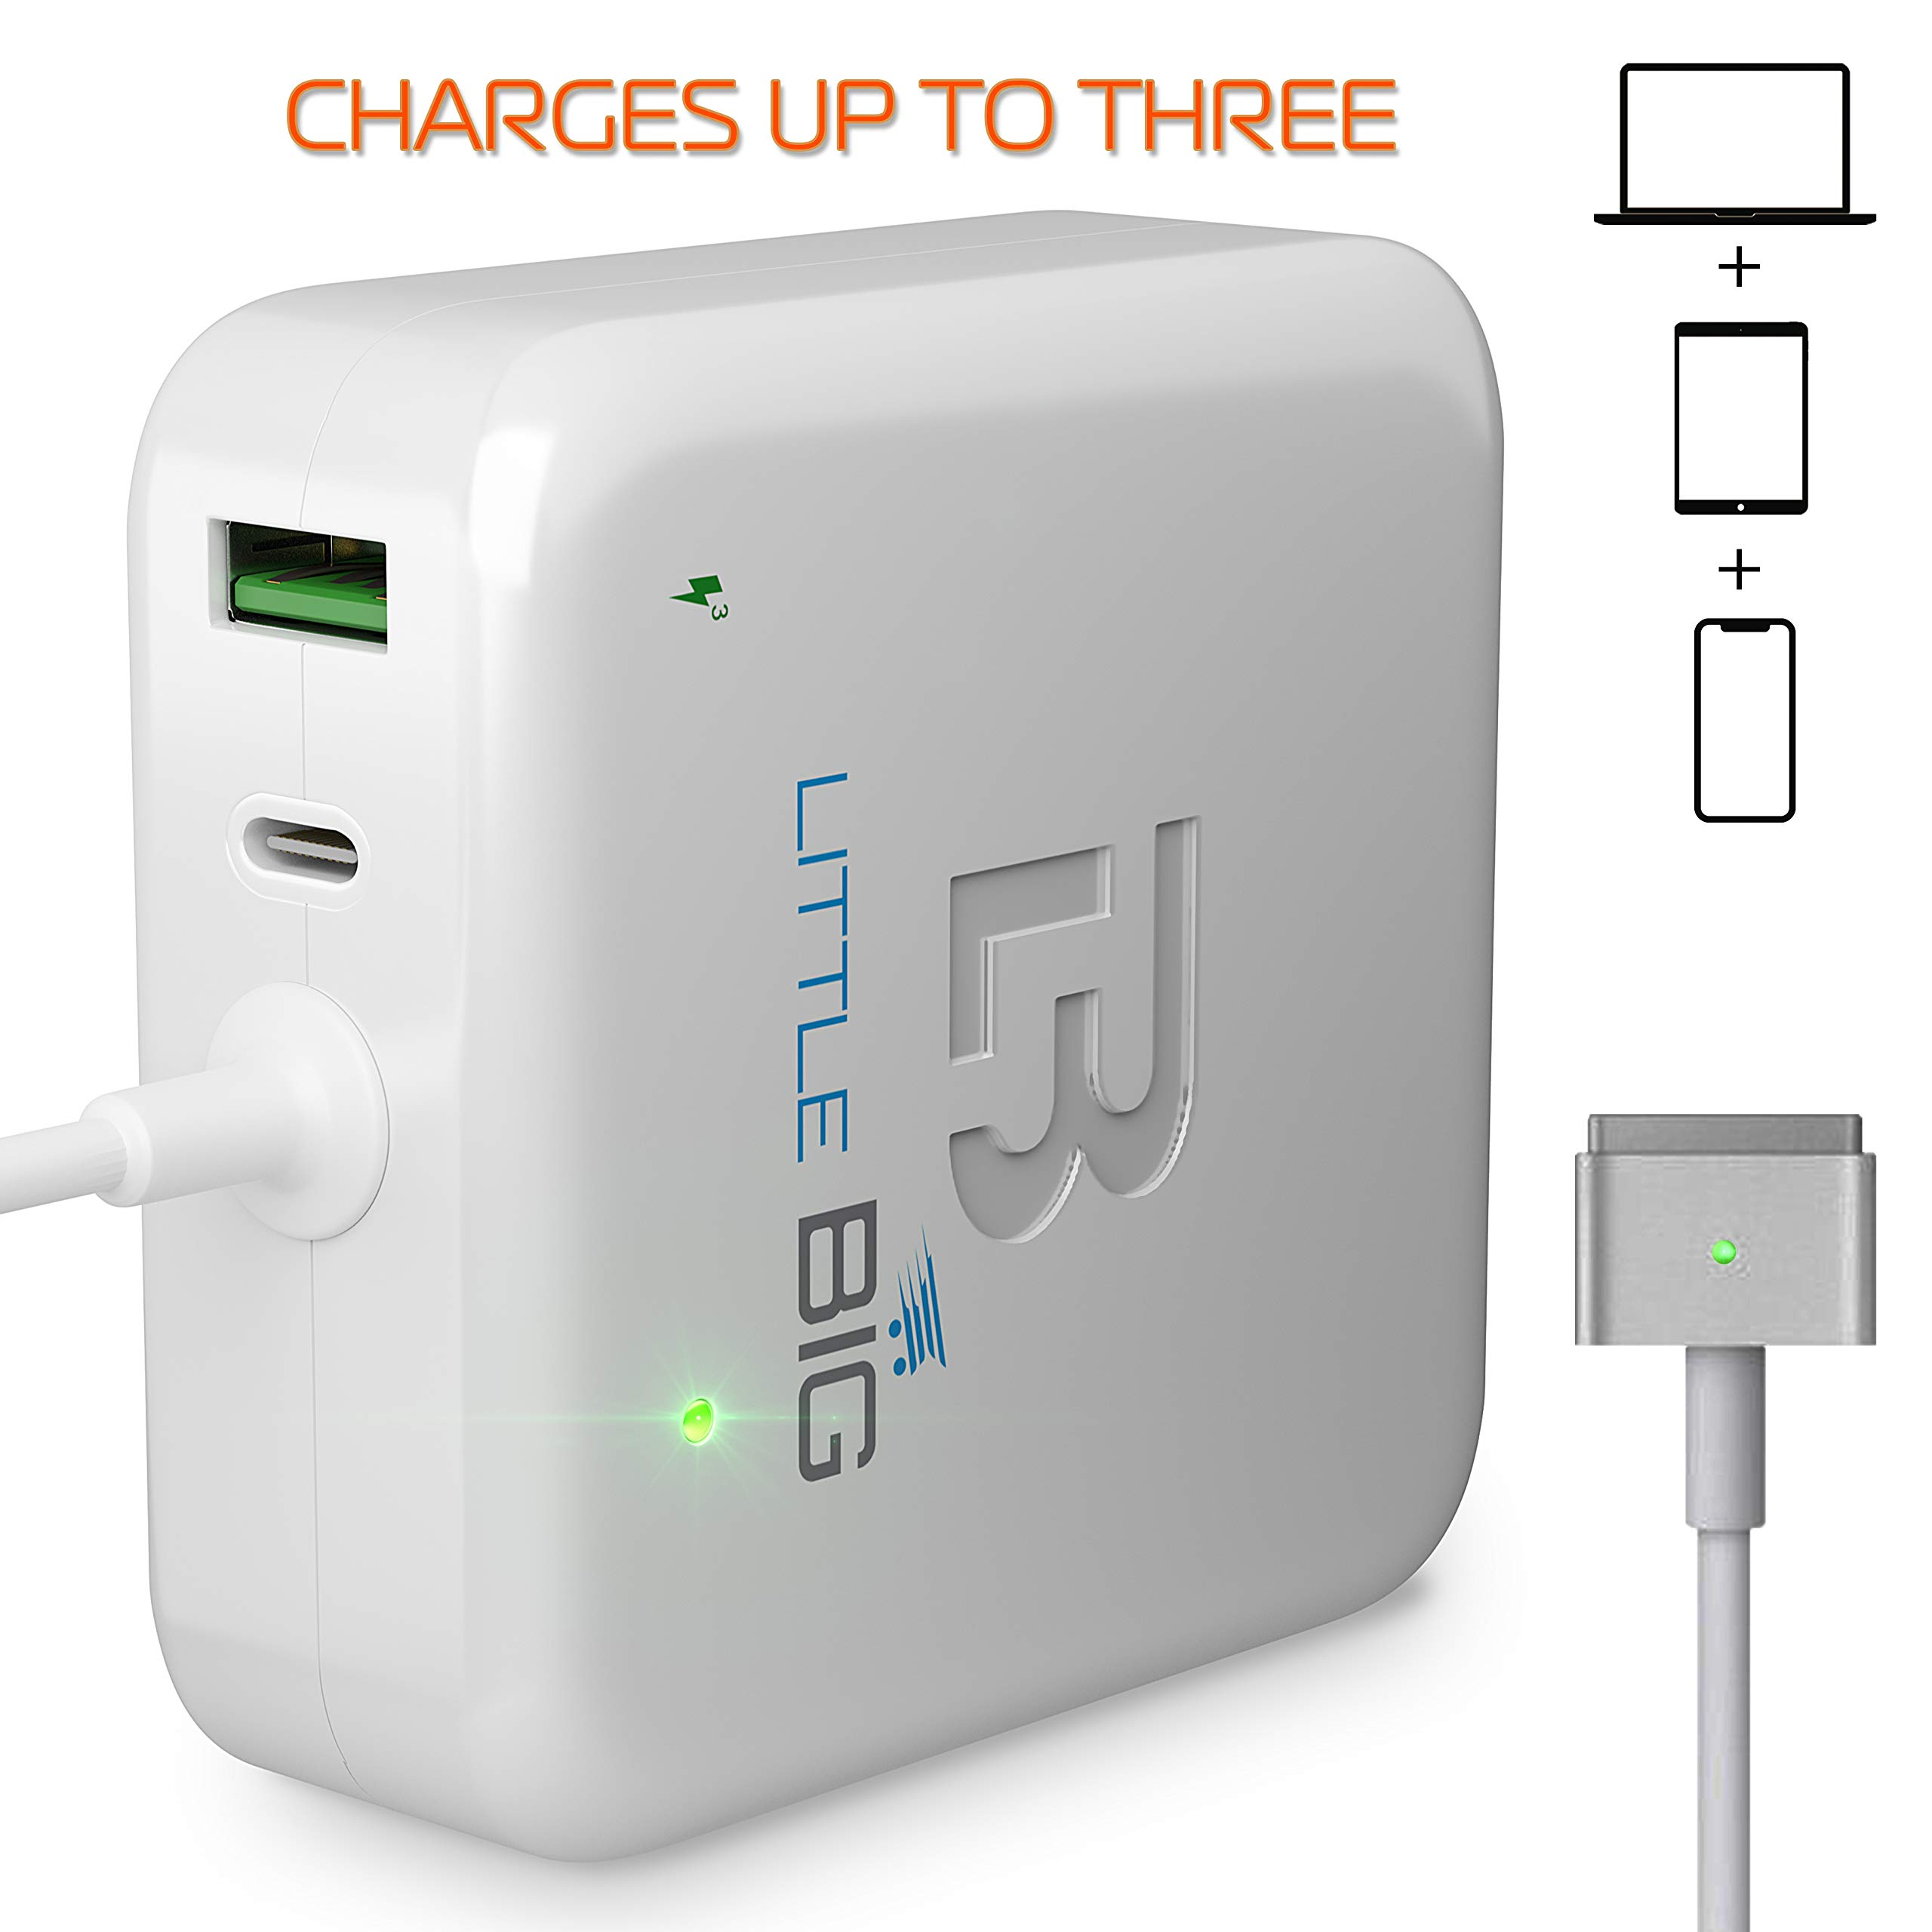 MacBook Air Charger 45w T-tip - Multifunctional Charger Compatible with MacBook Air 45w Magsafe 2 - White